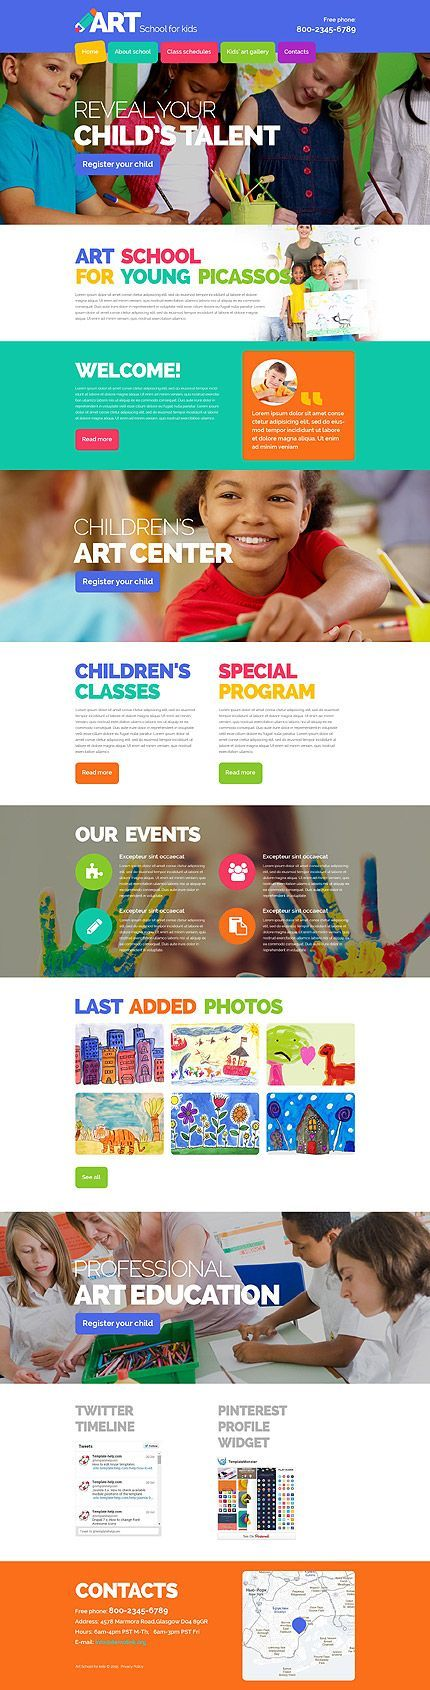 Art School For Kids #website #template. #themes #business #responsive #websitethemes. If you like UX, design, or design thinking, check out theuxblog.com podcast https://itunes.apple.com/us/podcast/ux-blog-user-experience-design/id1127946001?mt=2